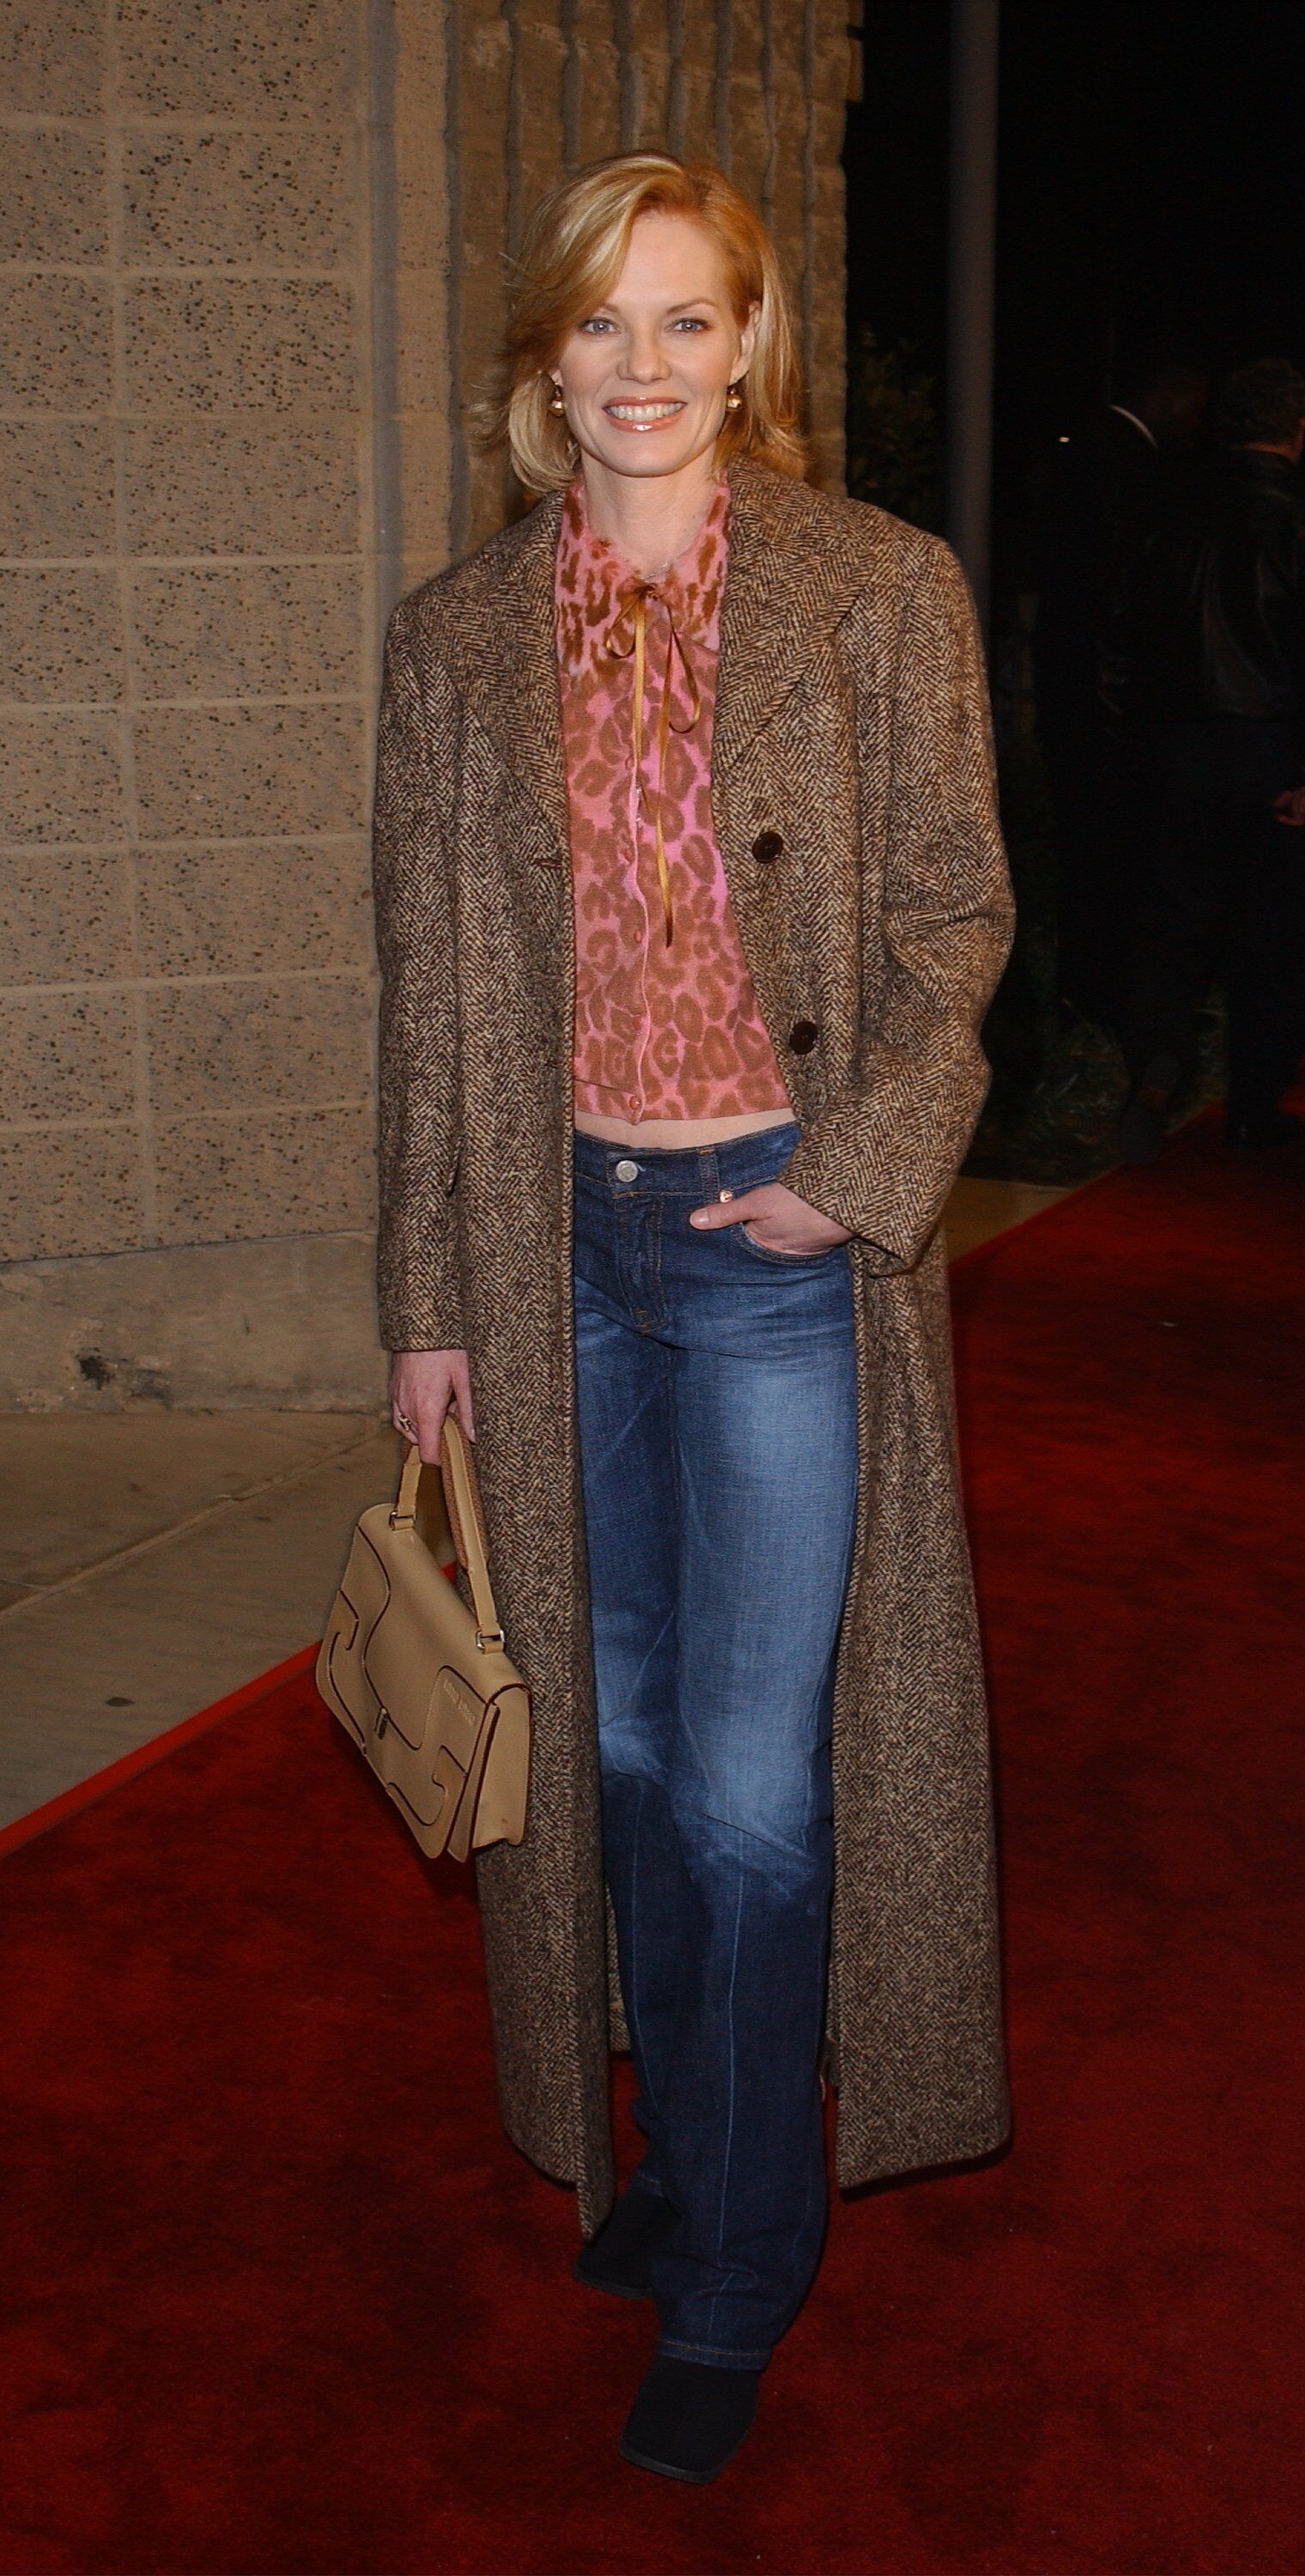 """Marg Helgenberger attends the premiere of the film """"Black Hawk Down"""" 